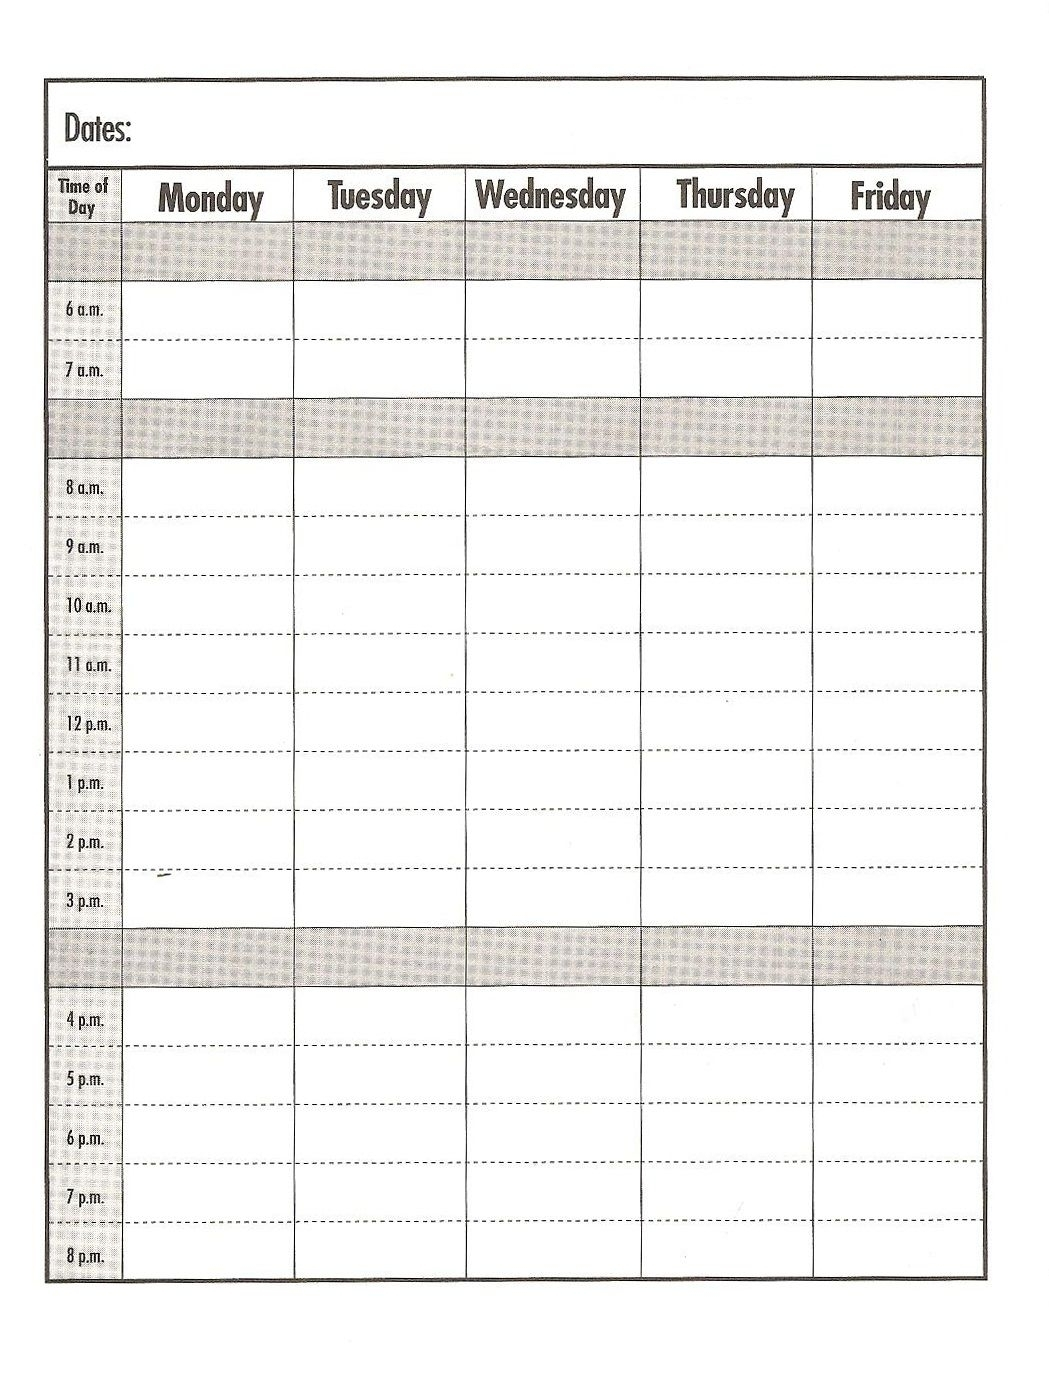 Weekday Schedule With Time Slots - Calendar Inspiration Design